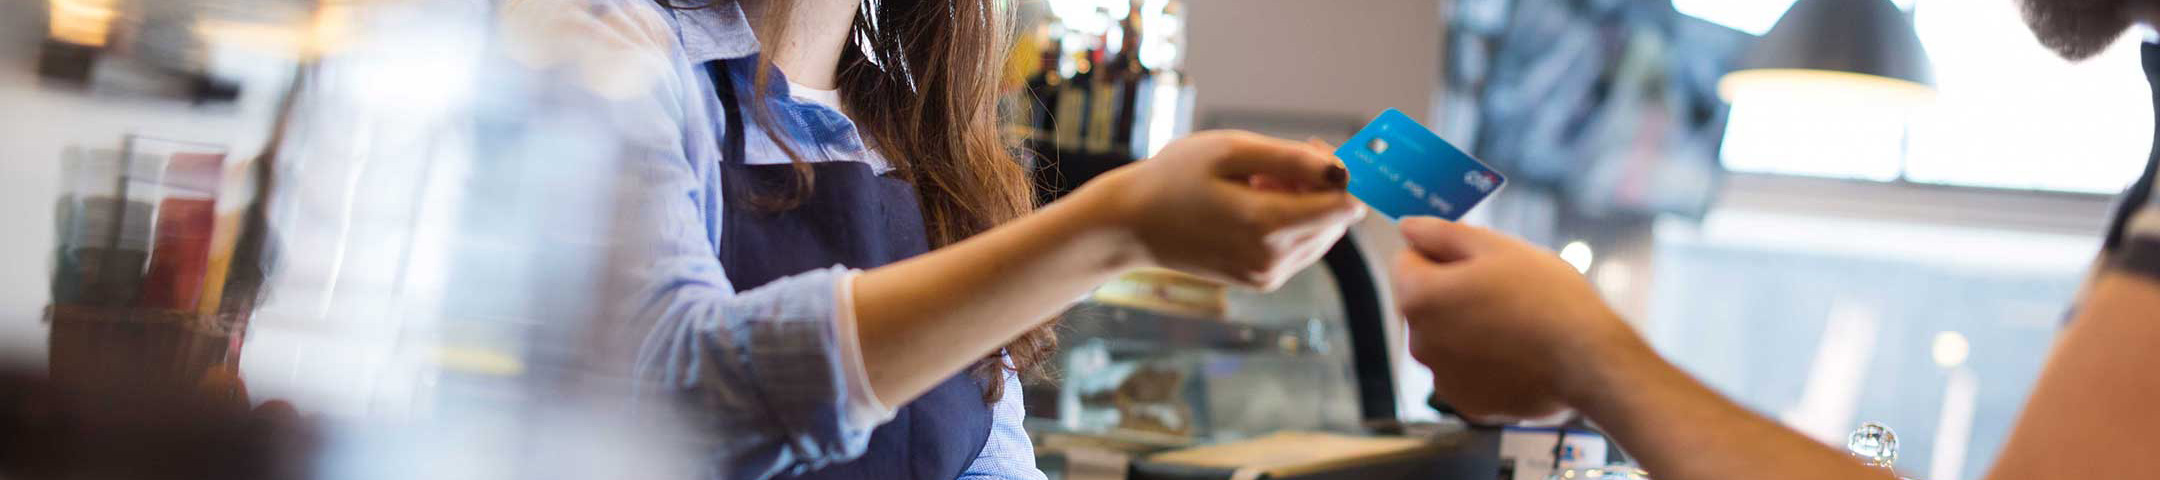 Get credit card tips before spending at the coffee shop.